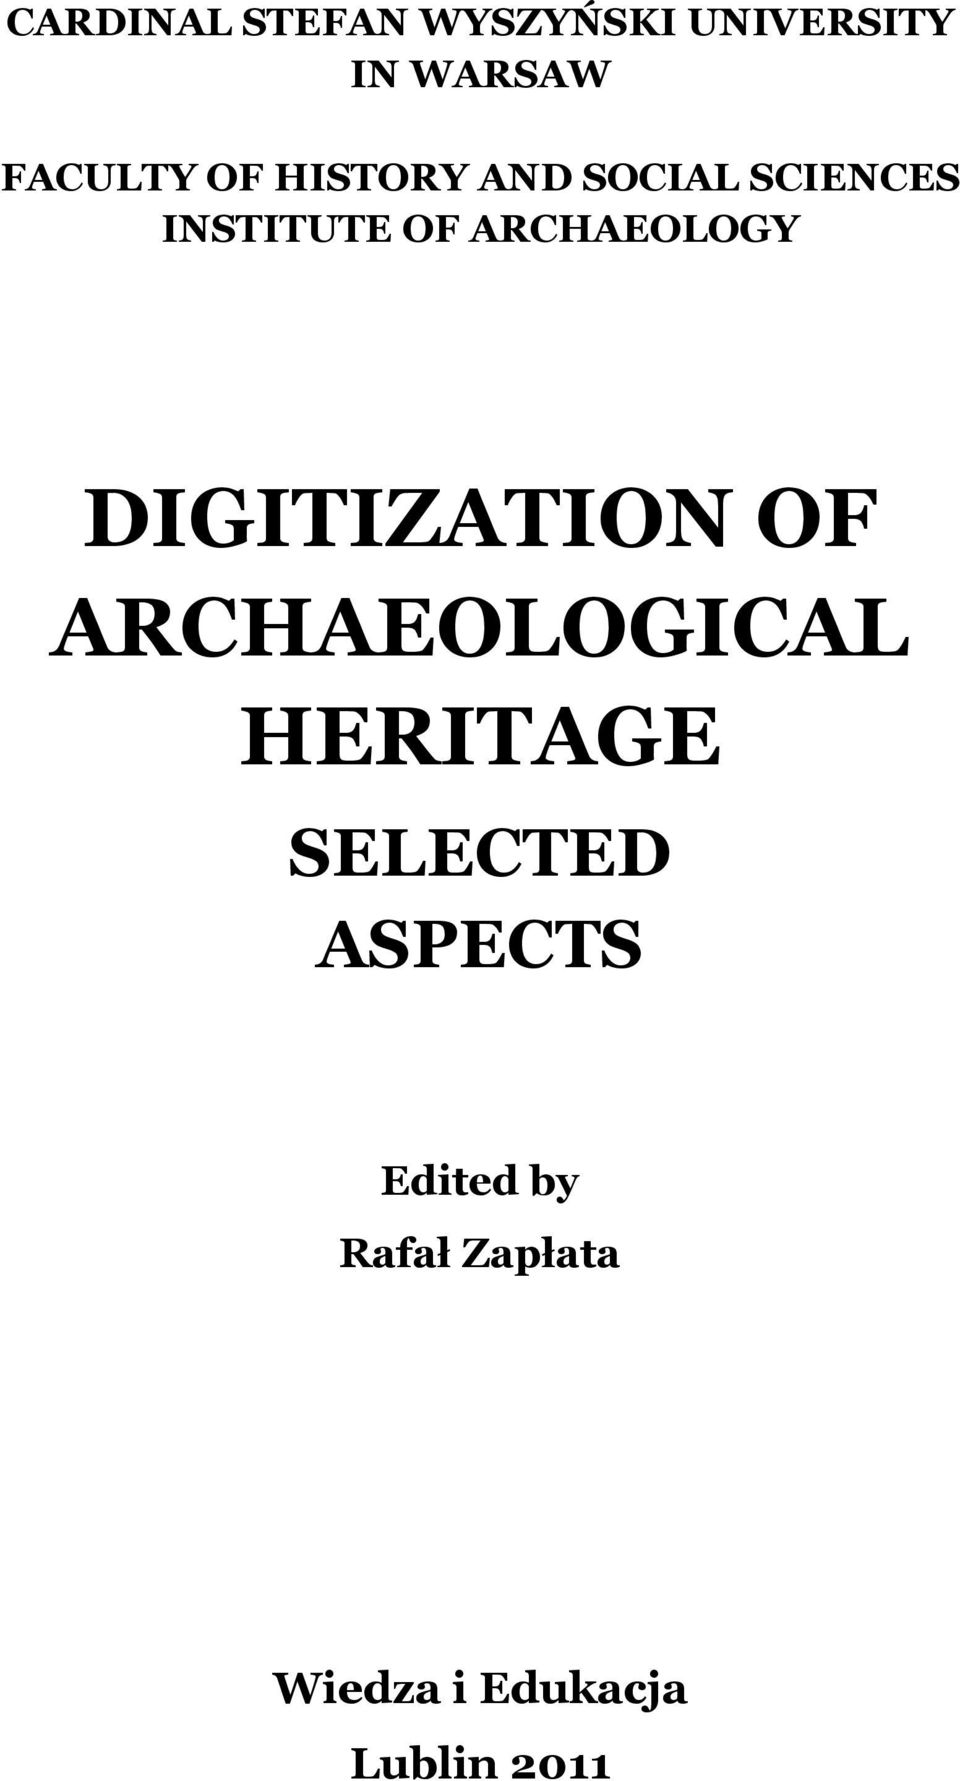 DIGITIZATION OF ARCHAEOLOGICAL HERITAGE SELECTED